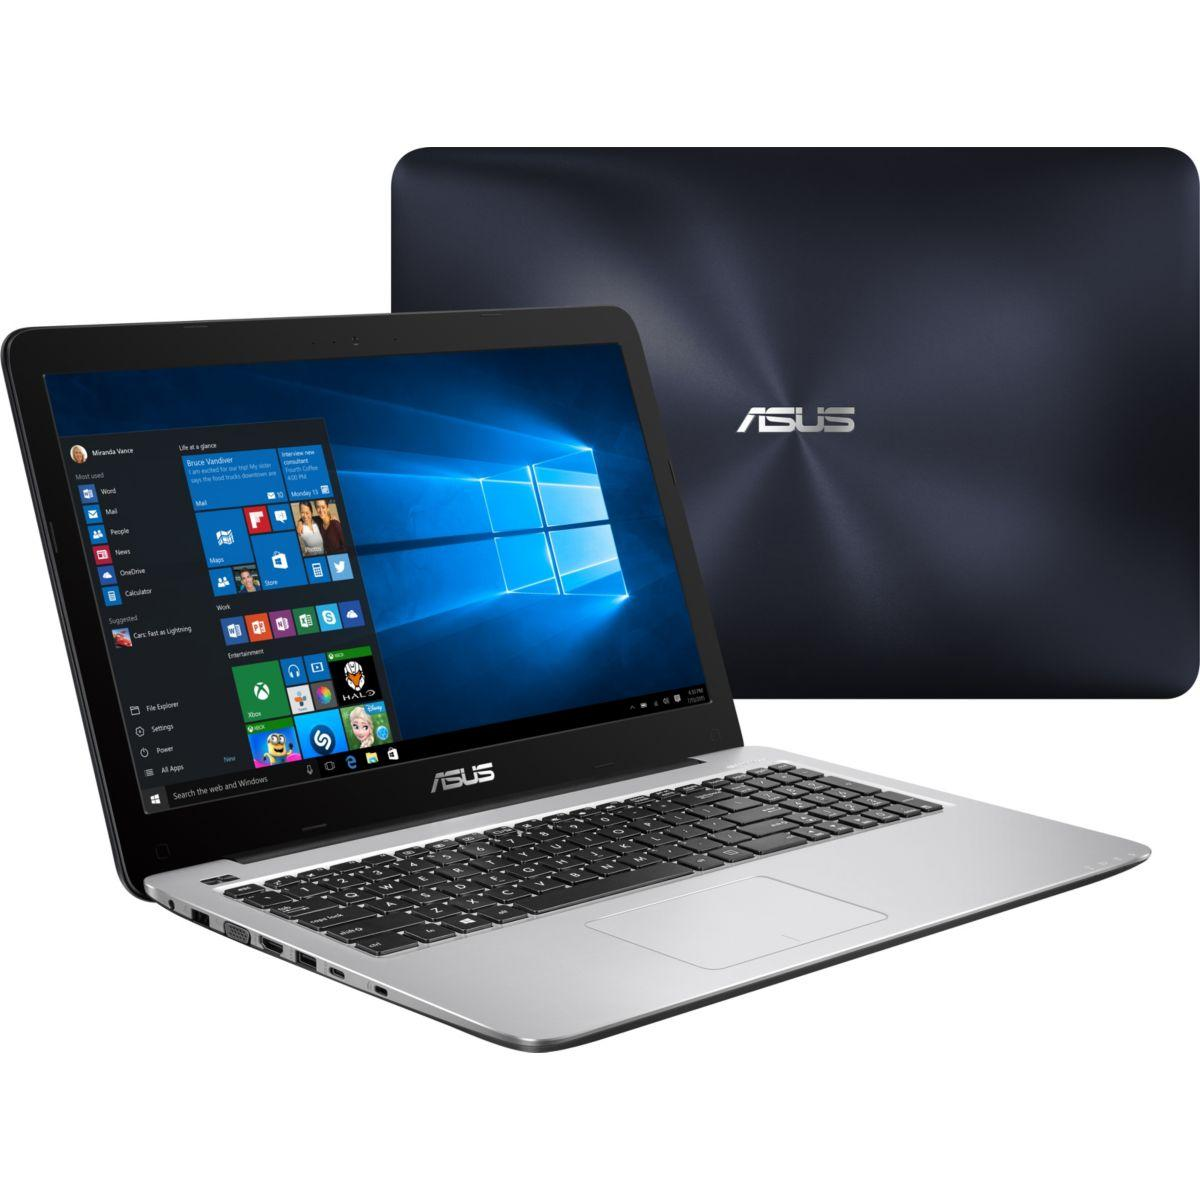 Portable asus r558uq-dm749t (photo)